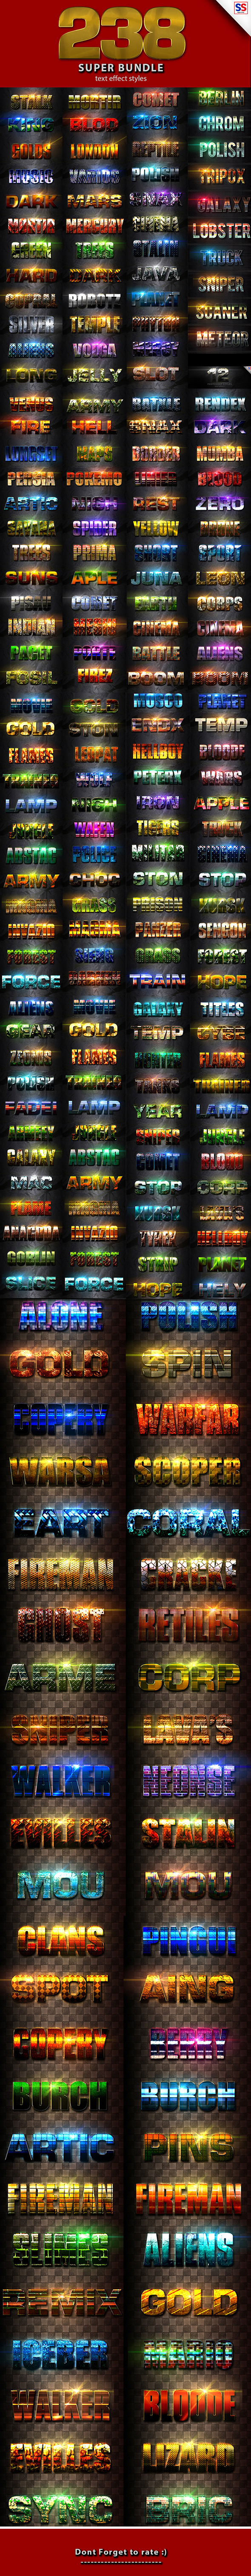 238 Super Bundle Text Effect - Text Effects Styles